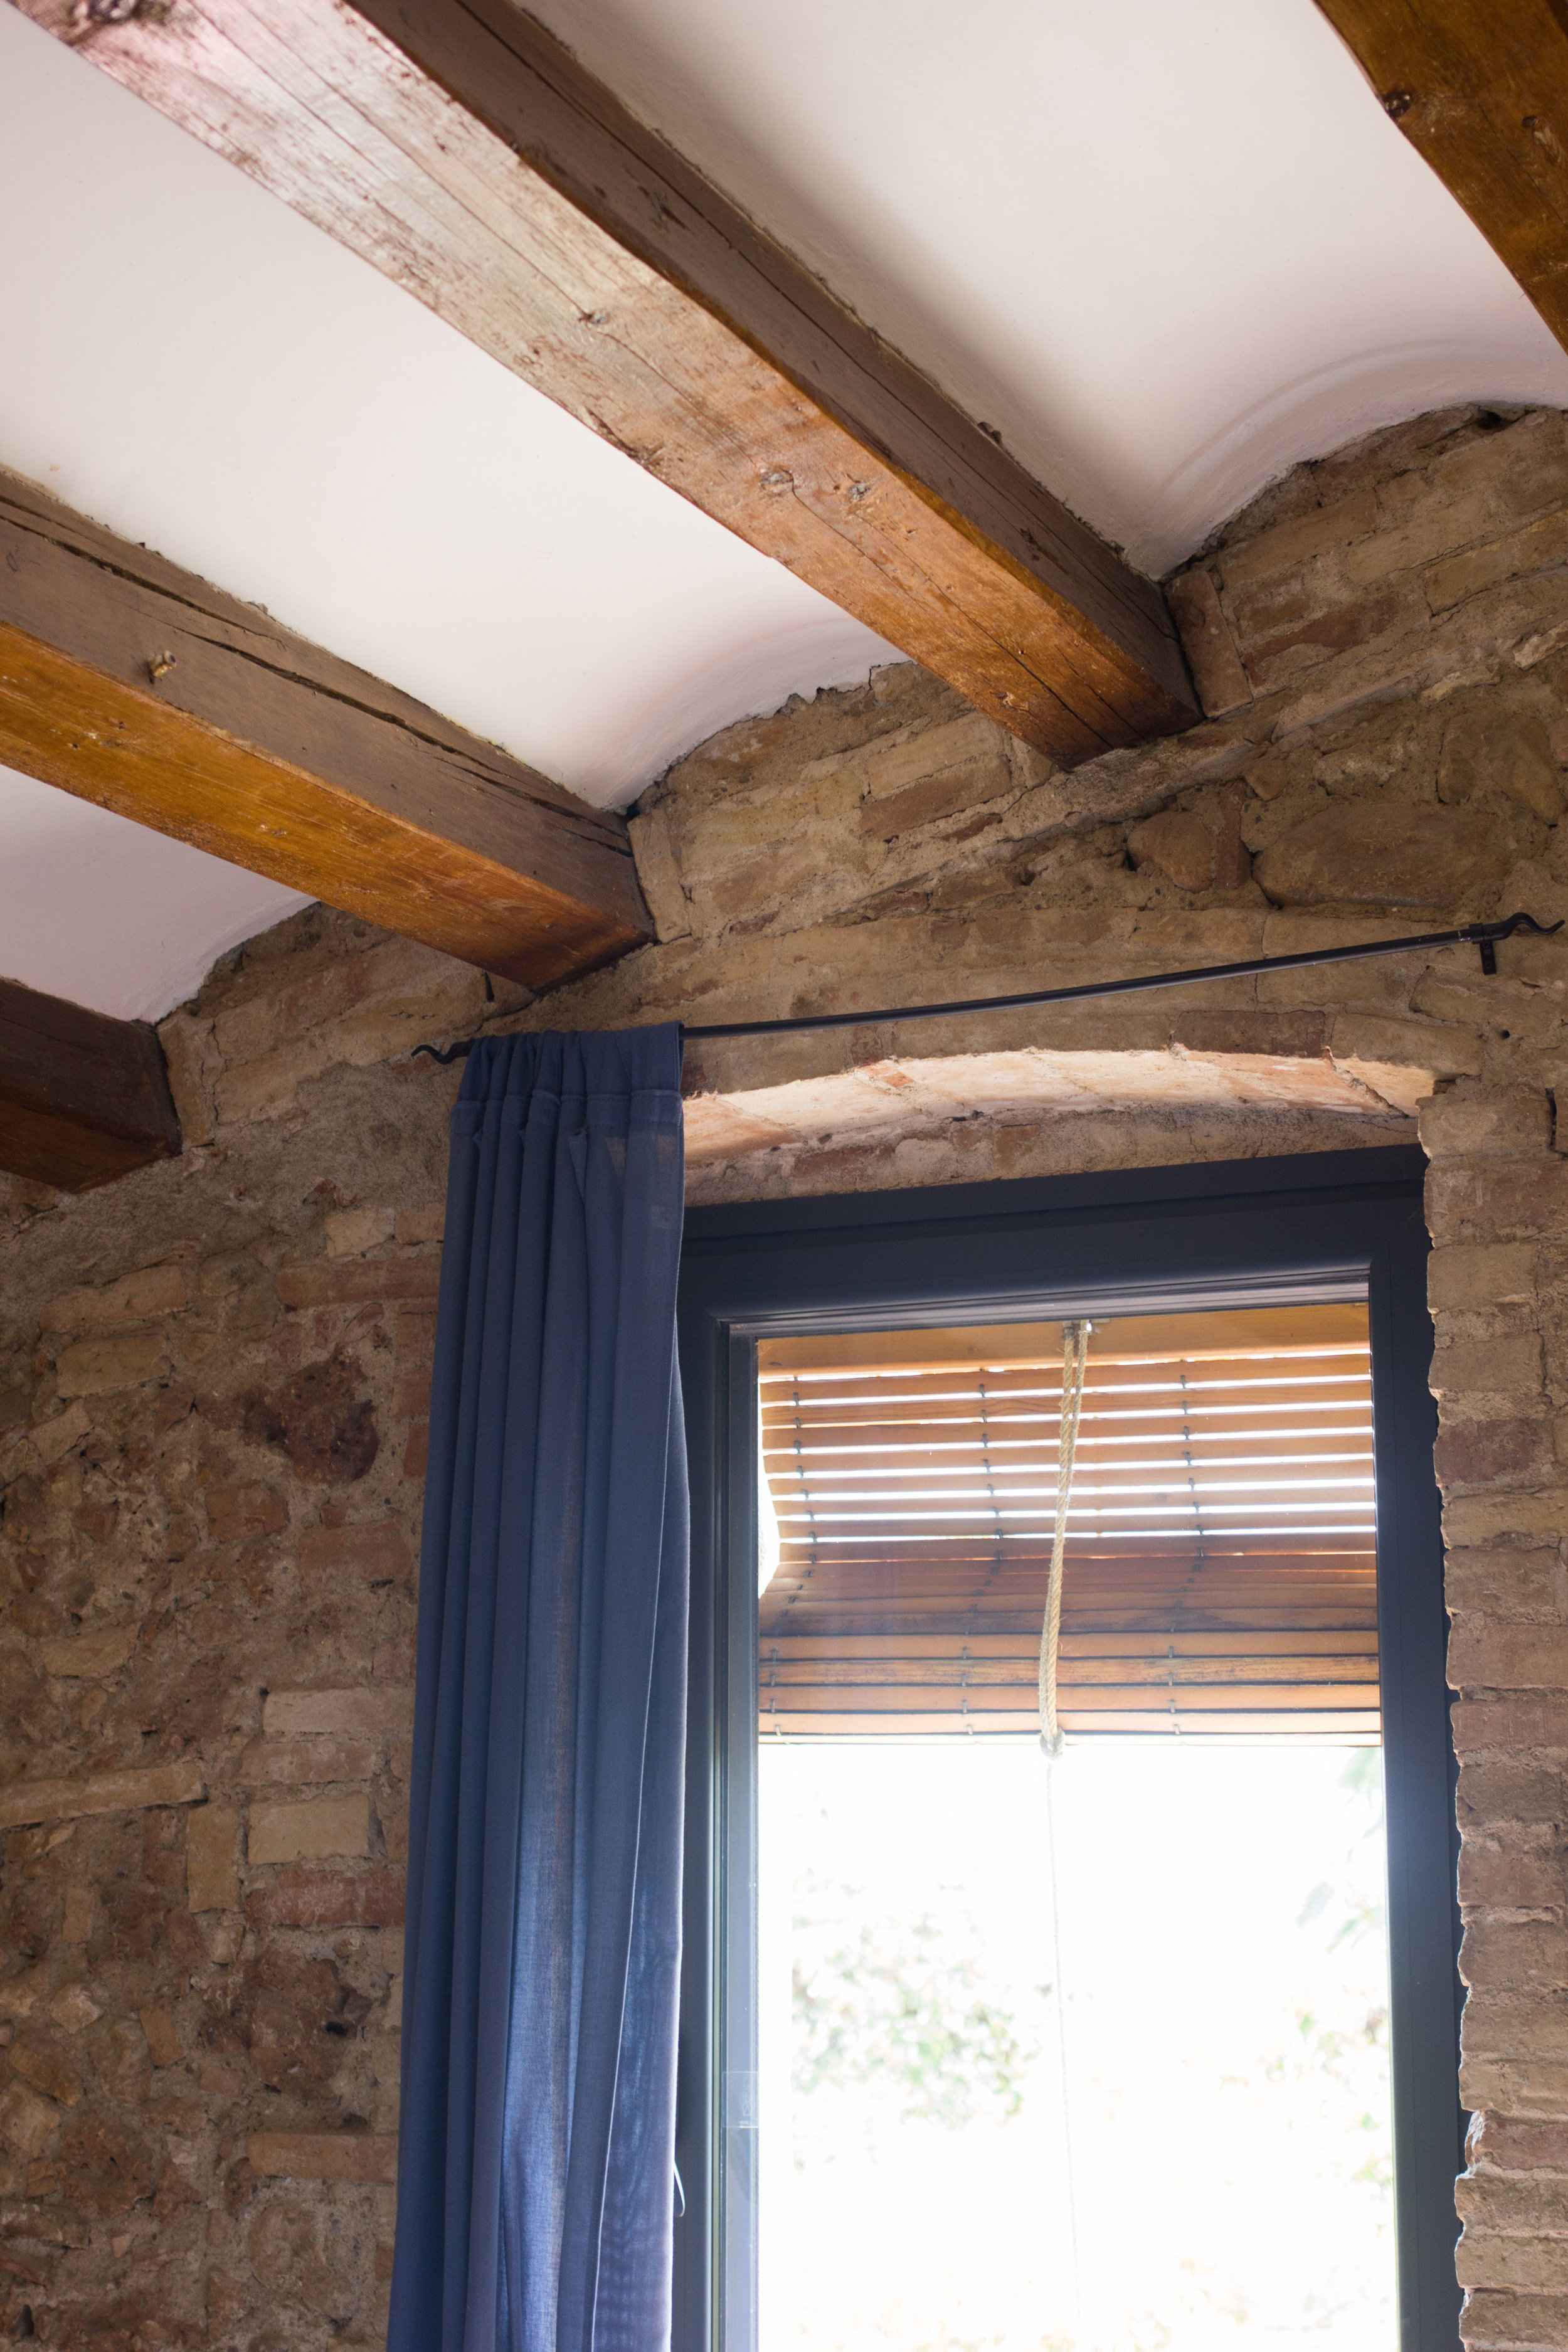 Wooden beam ceiling interior design with blinds on the curved window